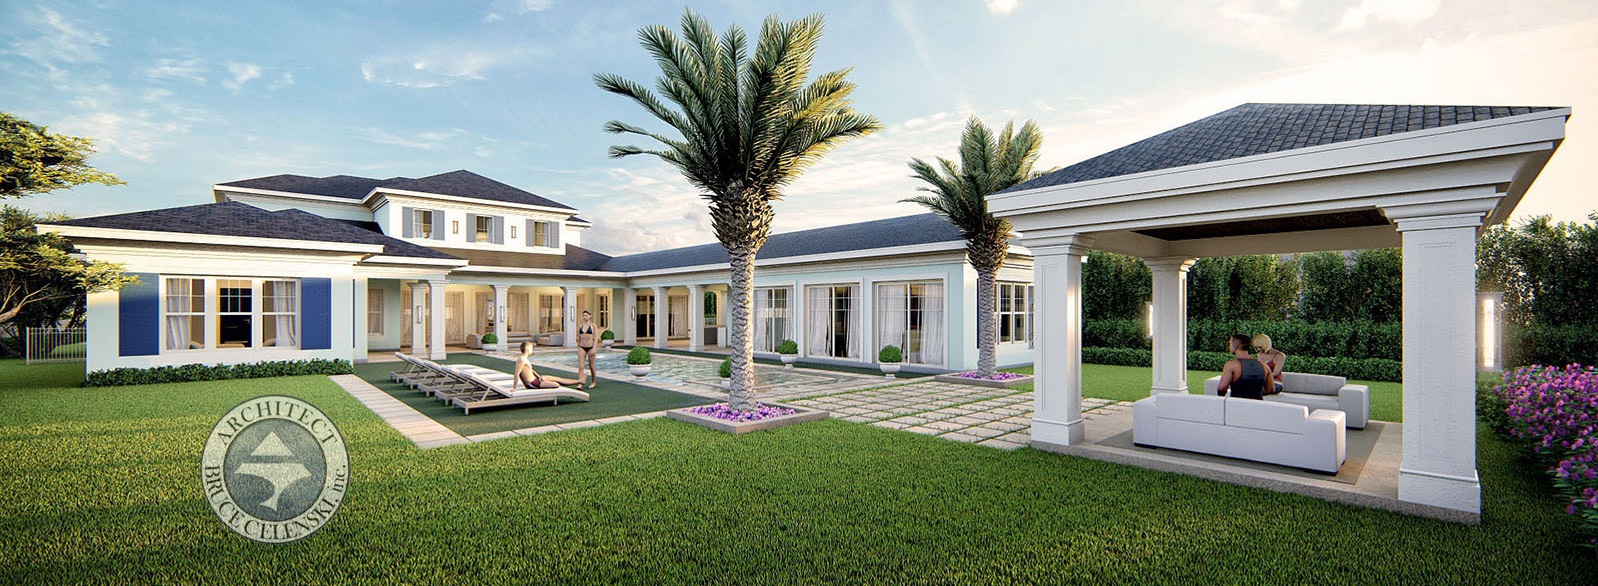 Fort Lauderdale Estate 2